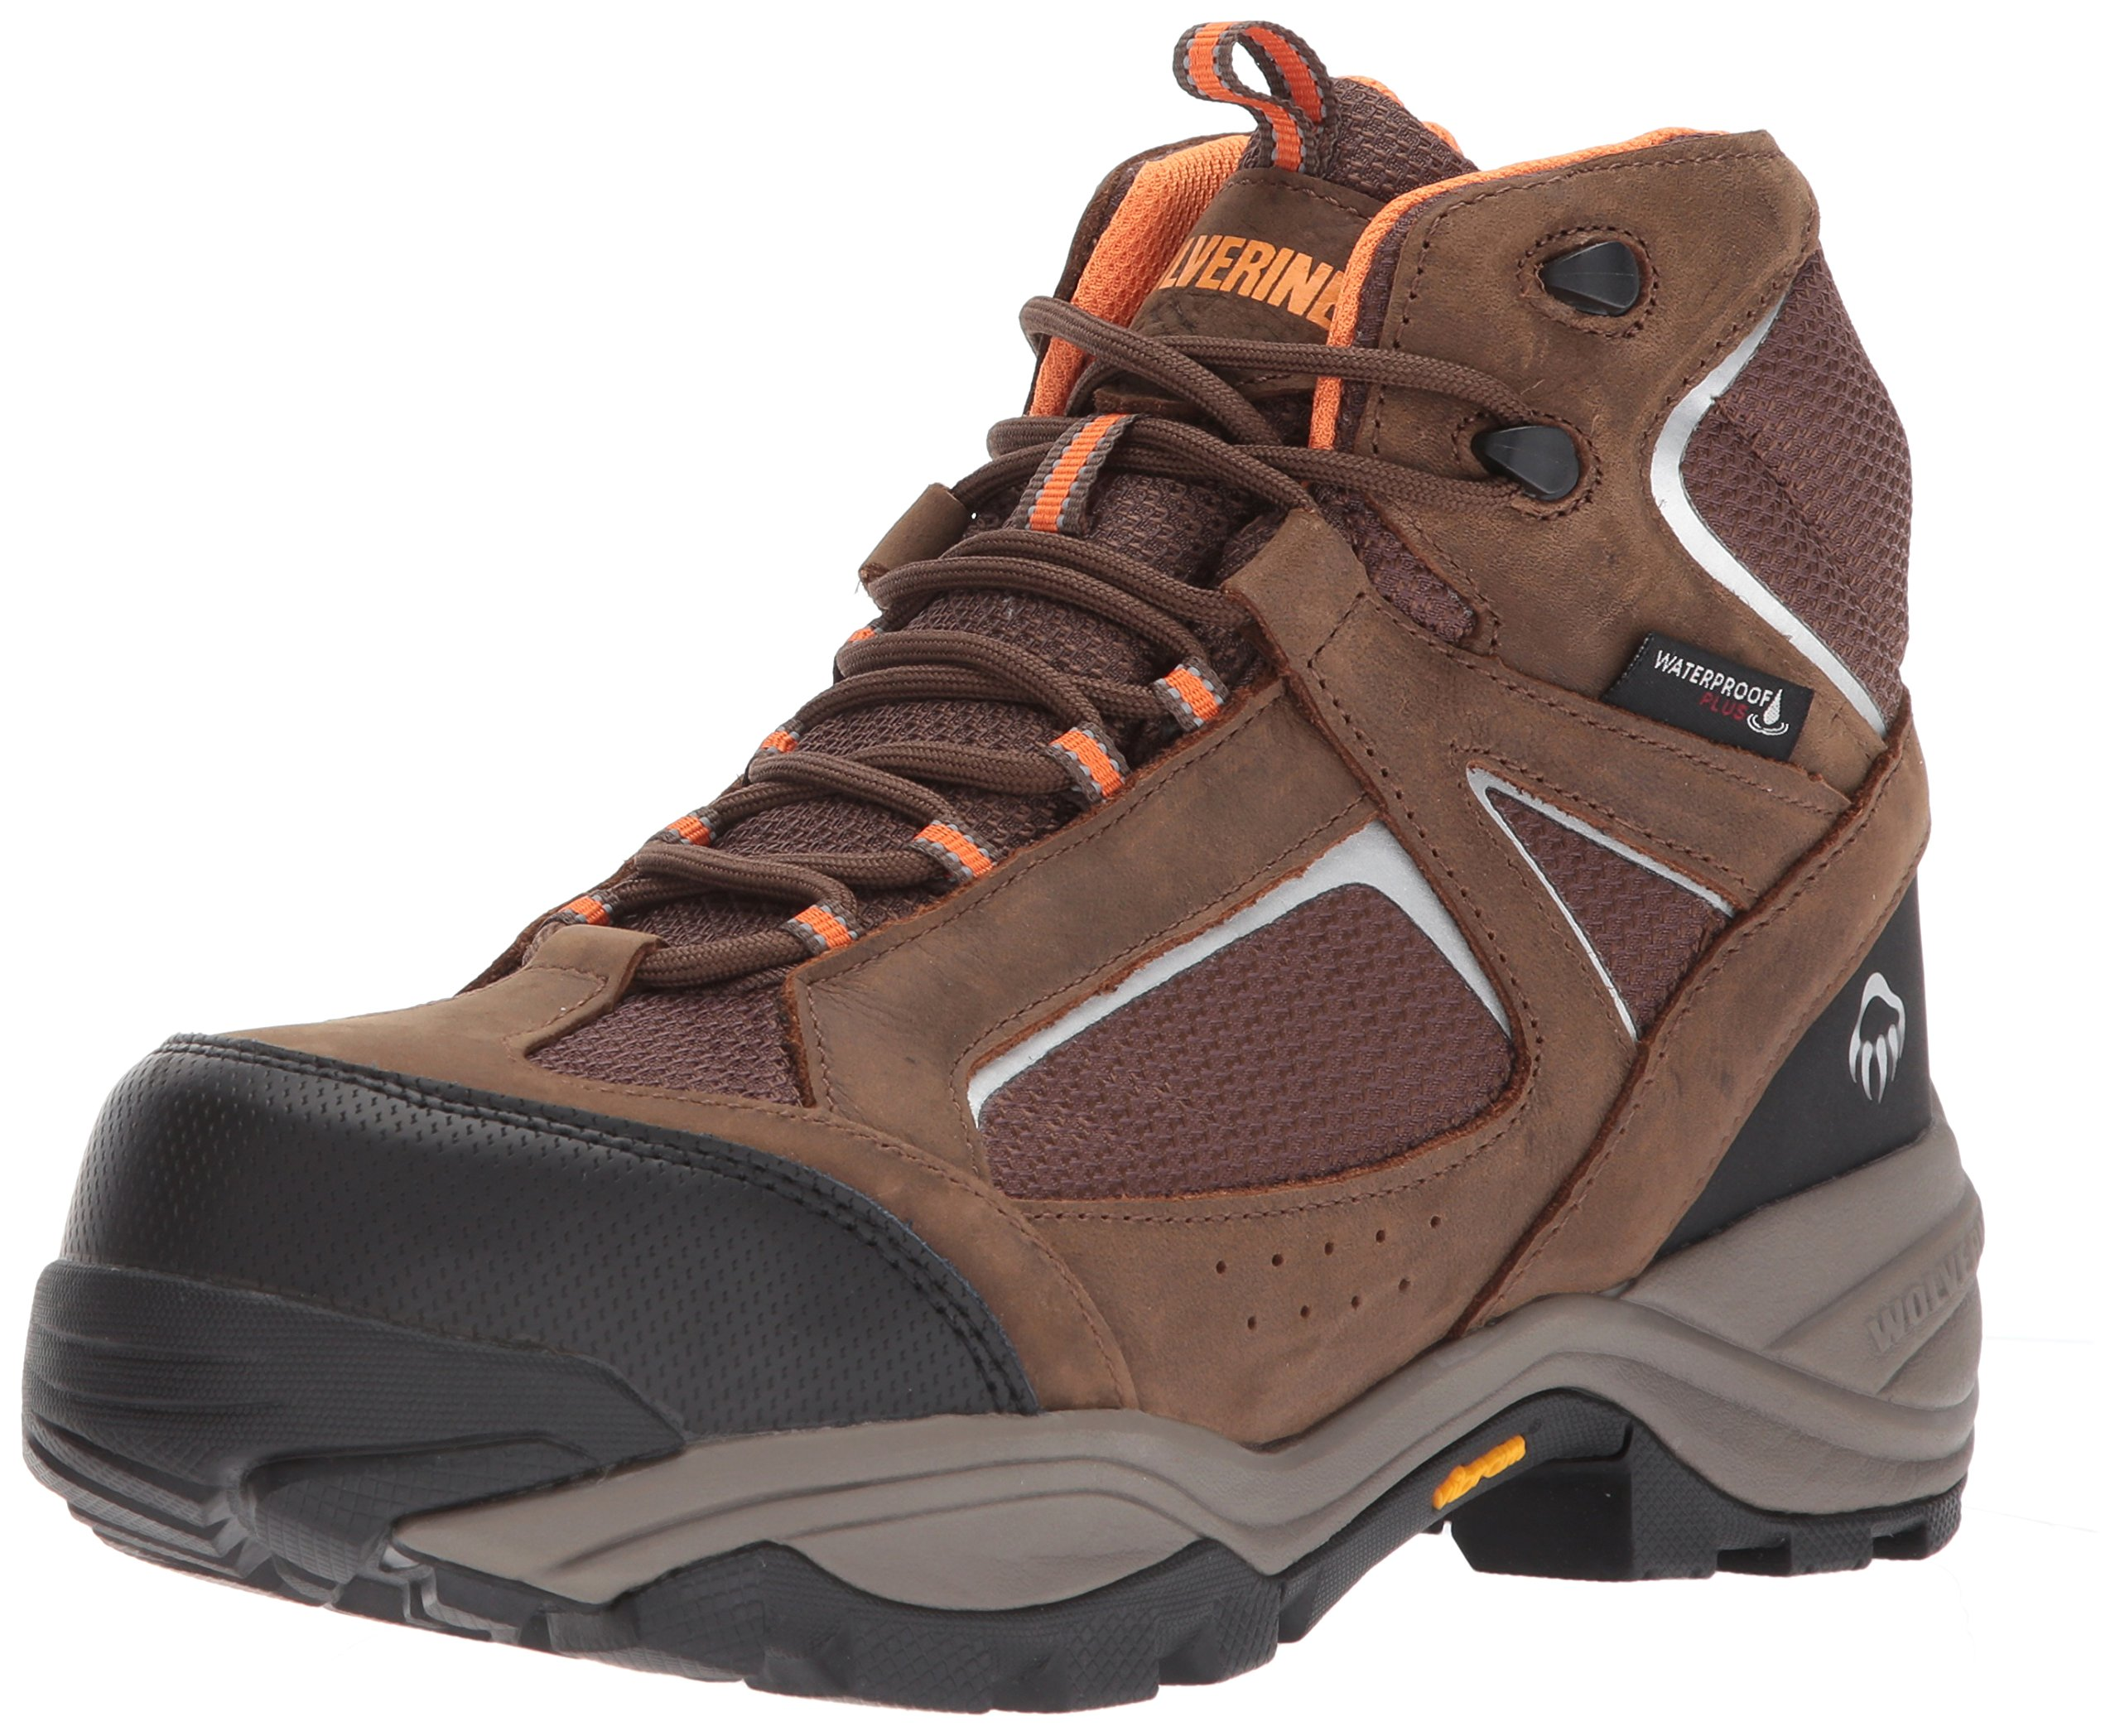 Wolverine Men's Quest Puncture Resistant WPF Composite Toe Work Boot, Brown, 7 W US